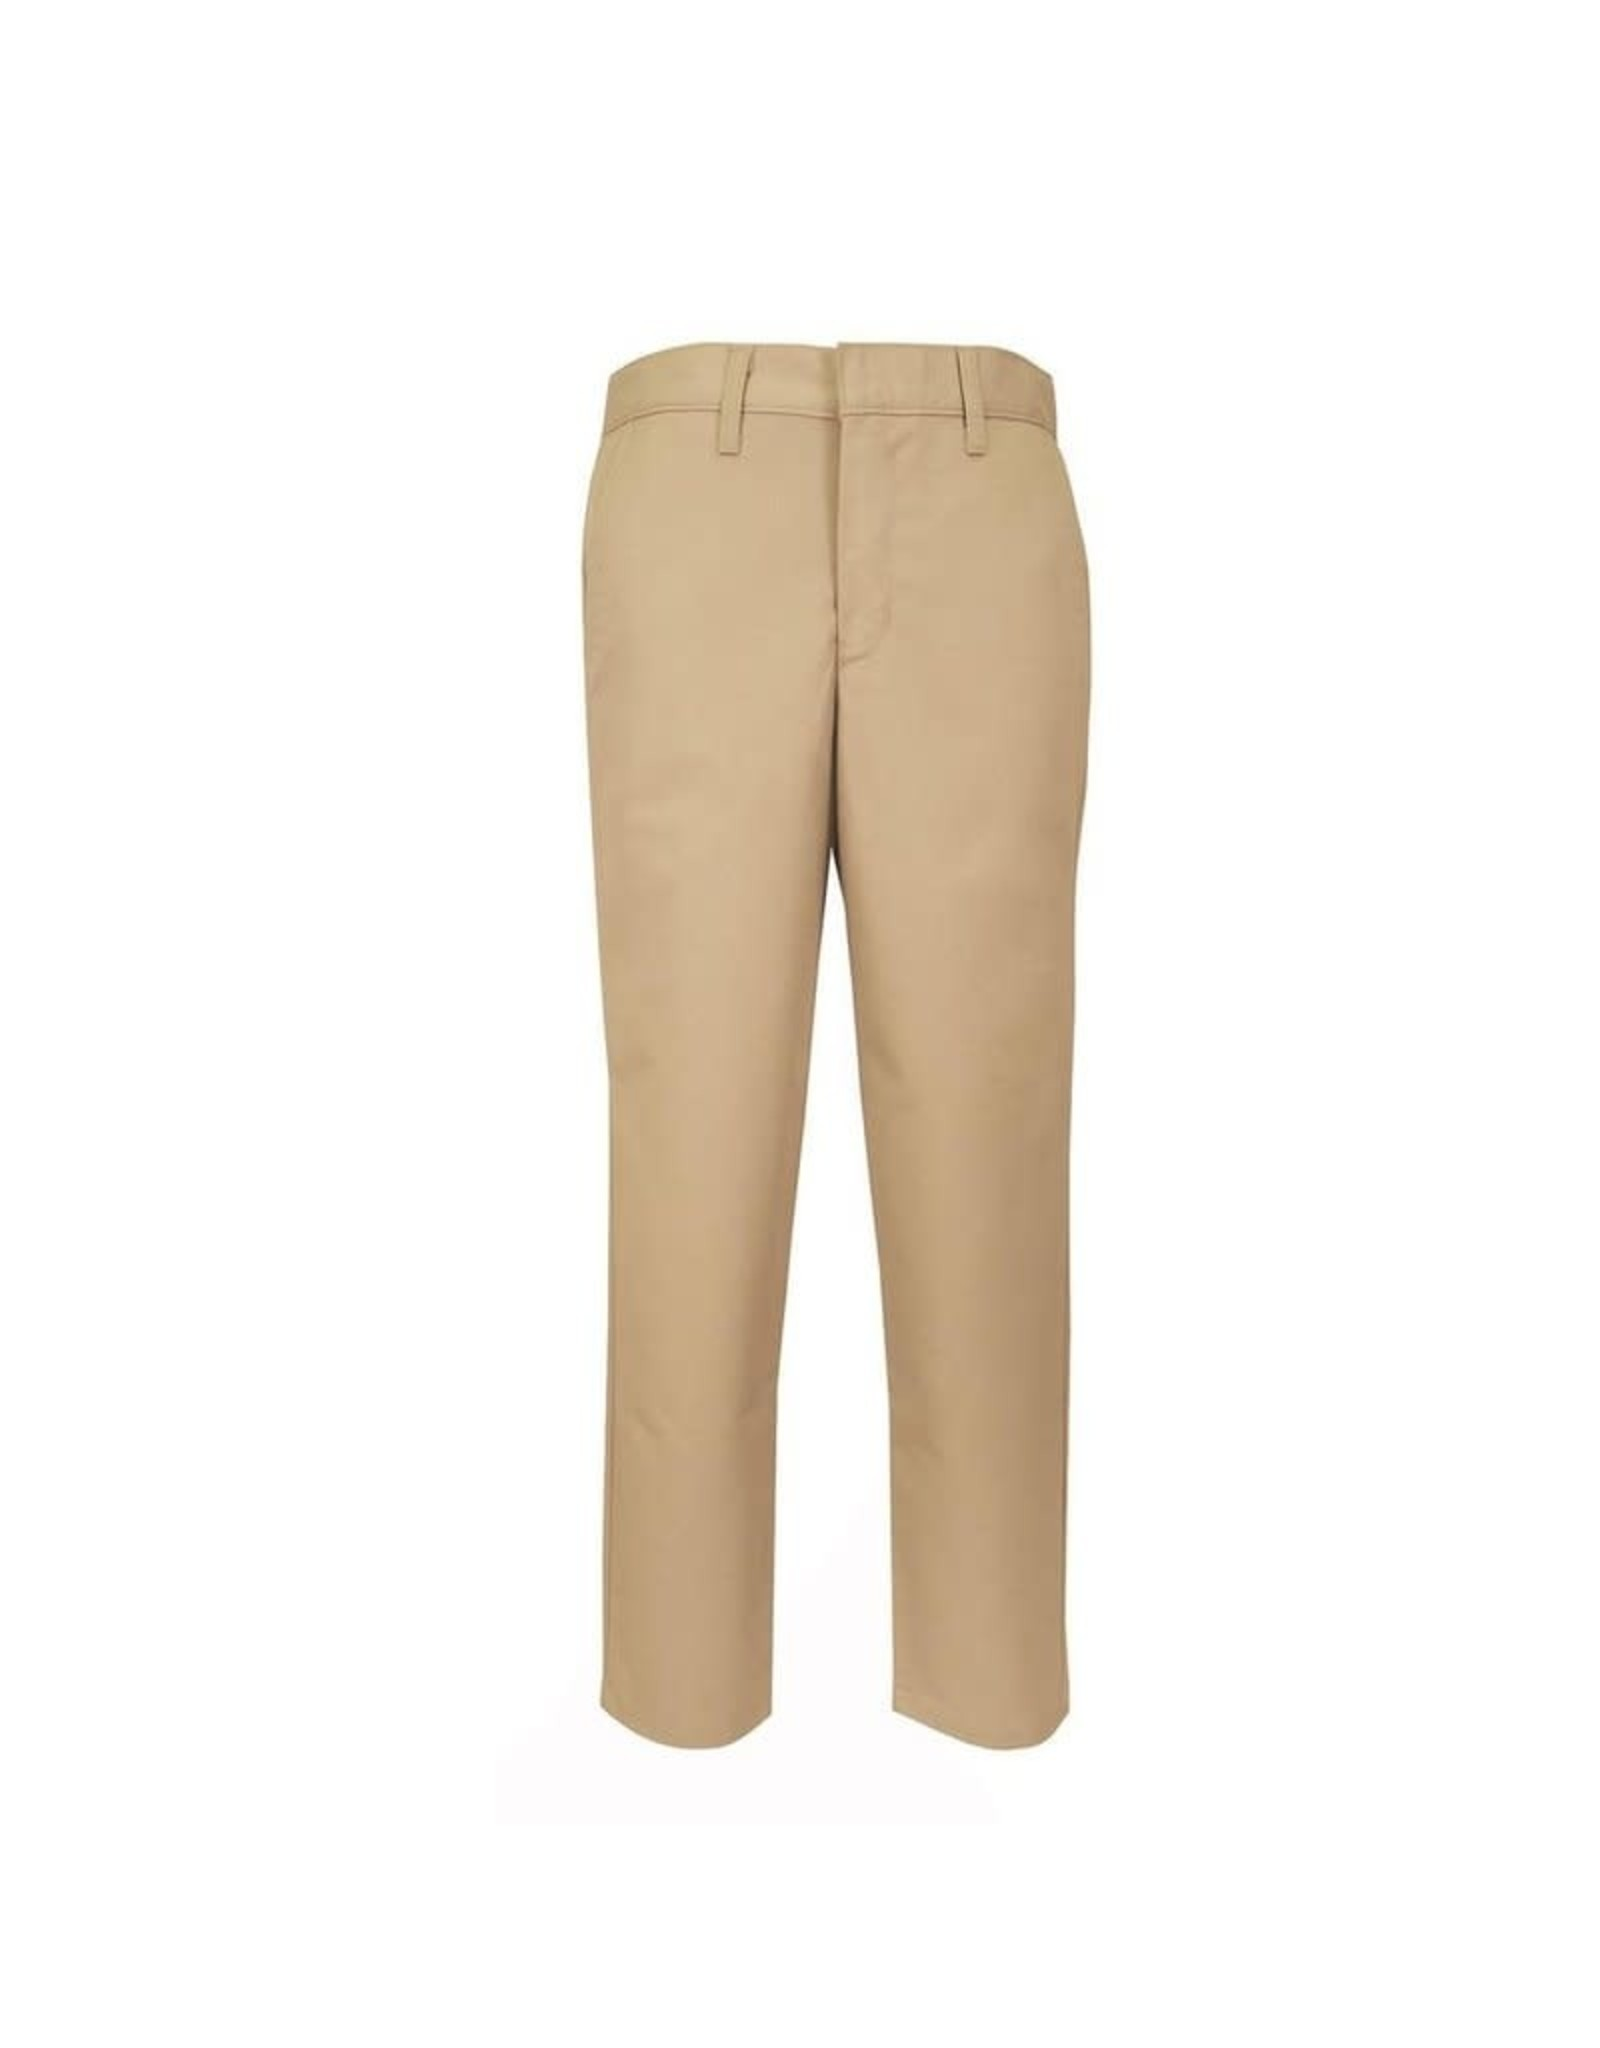 UNIFORM Girls Khaki Pants-New Style